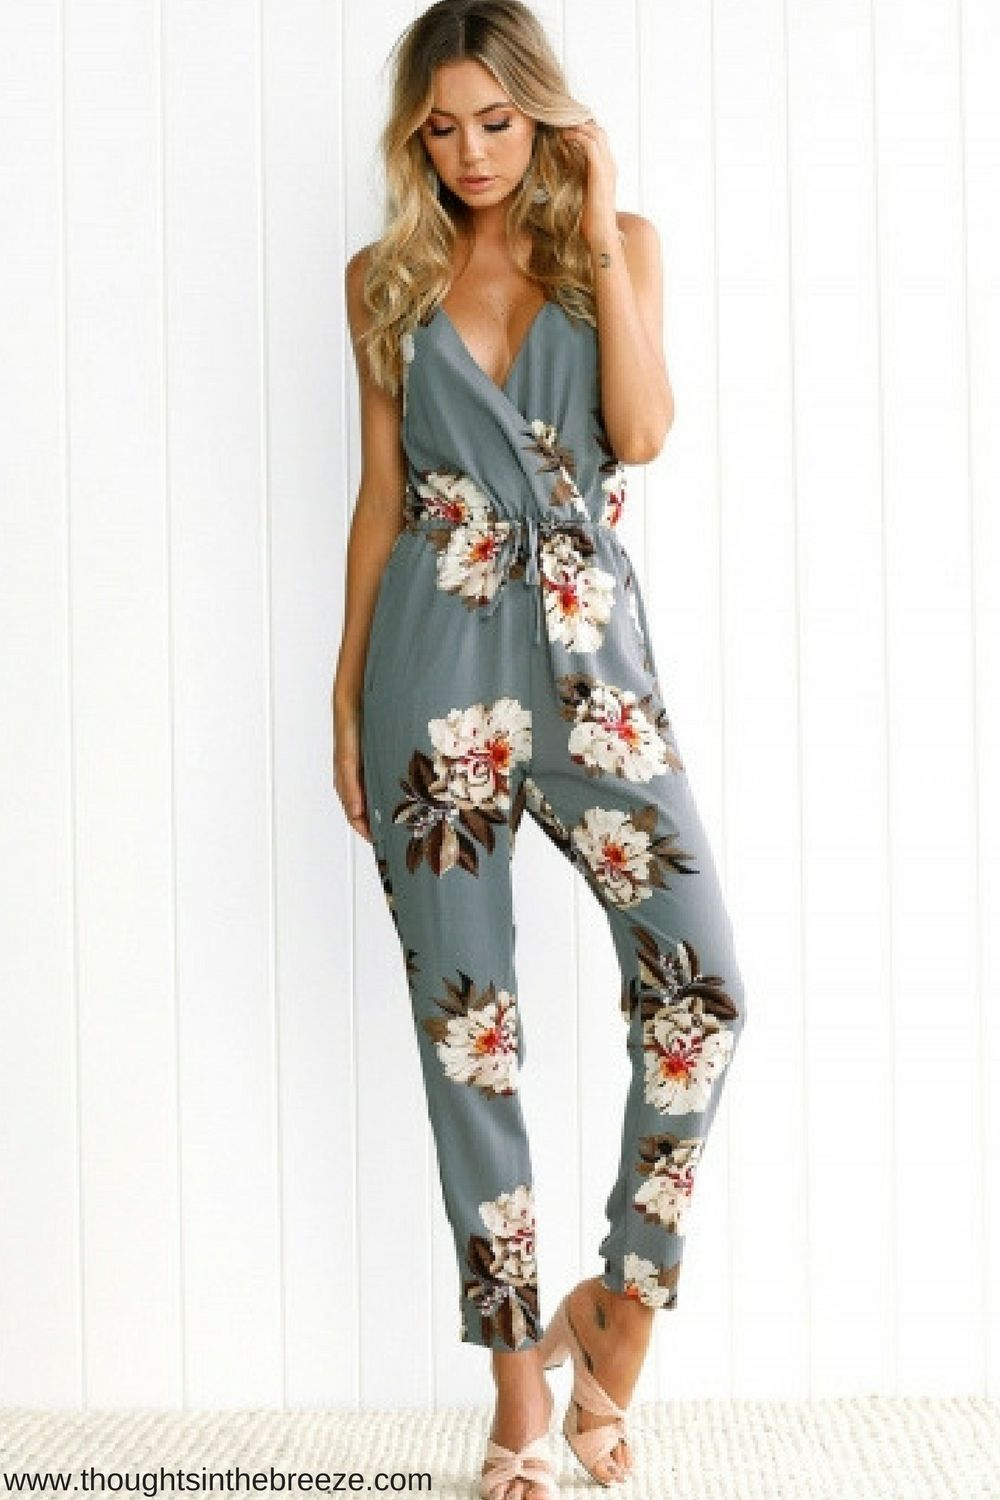 a71a9c92be5  24.99 Spaghetti Strap V Neck Floral Printed Jumpsuit Check out the trendy  spring rompers that are perfect fashion for spring and summer.